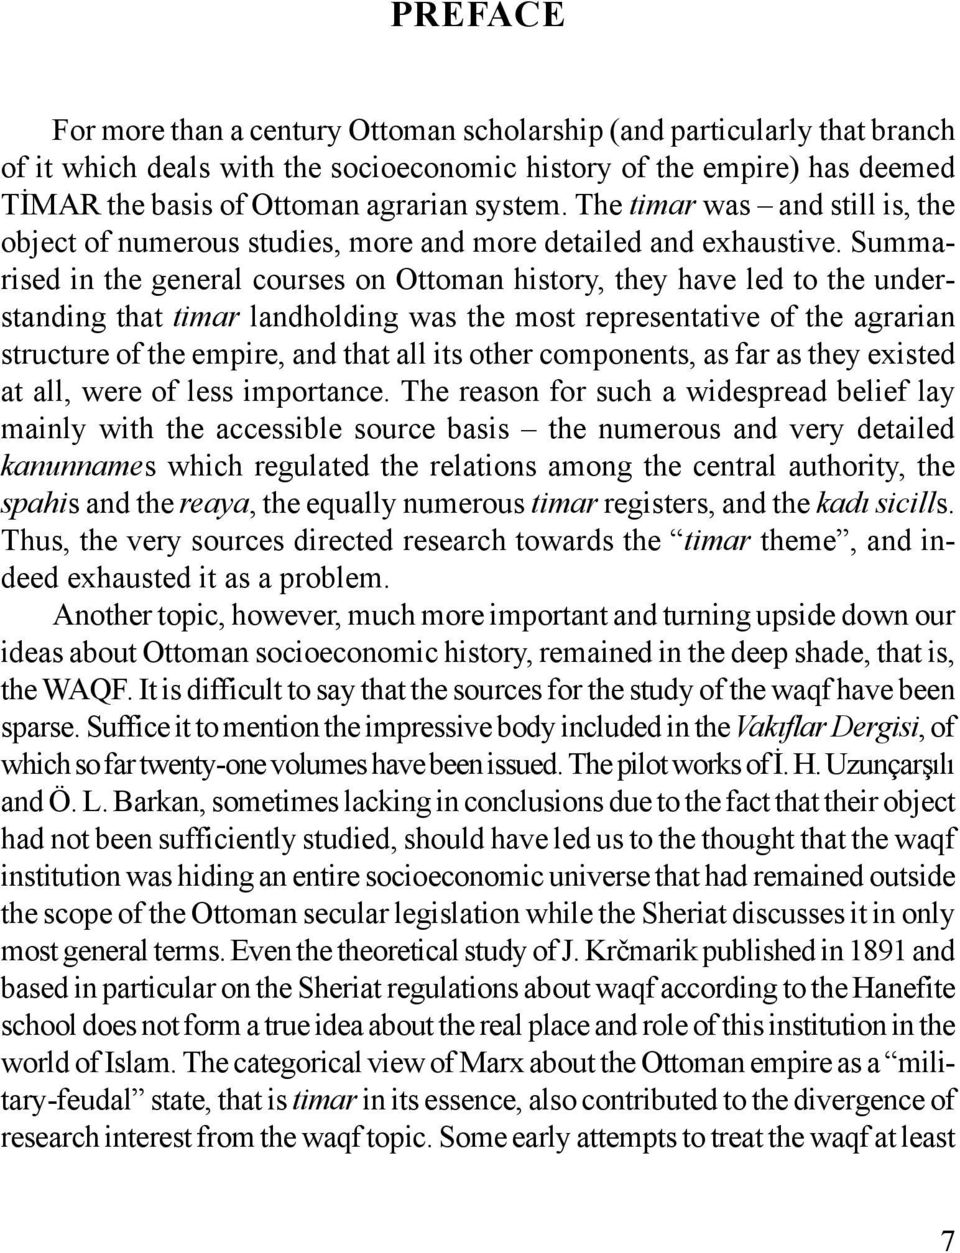 Summarised in the general courses on Ottoman history, they have led to the understanding that timar landholding was the most representative of the agrarian structure of the empire, and that all its